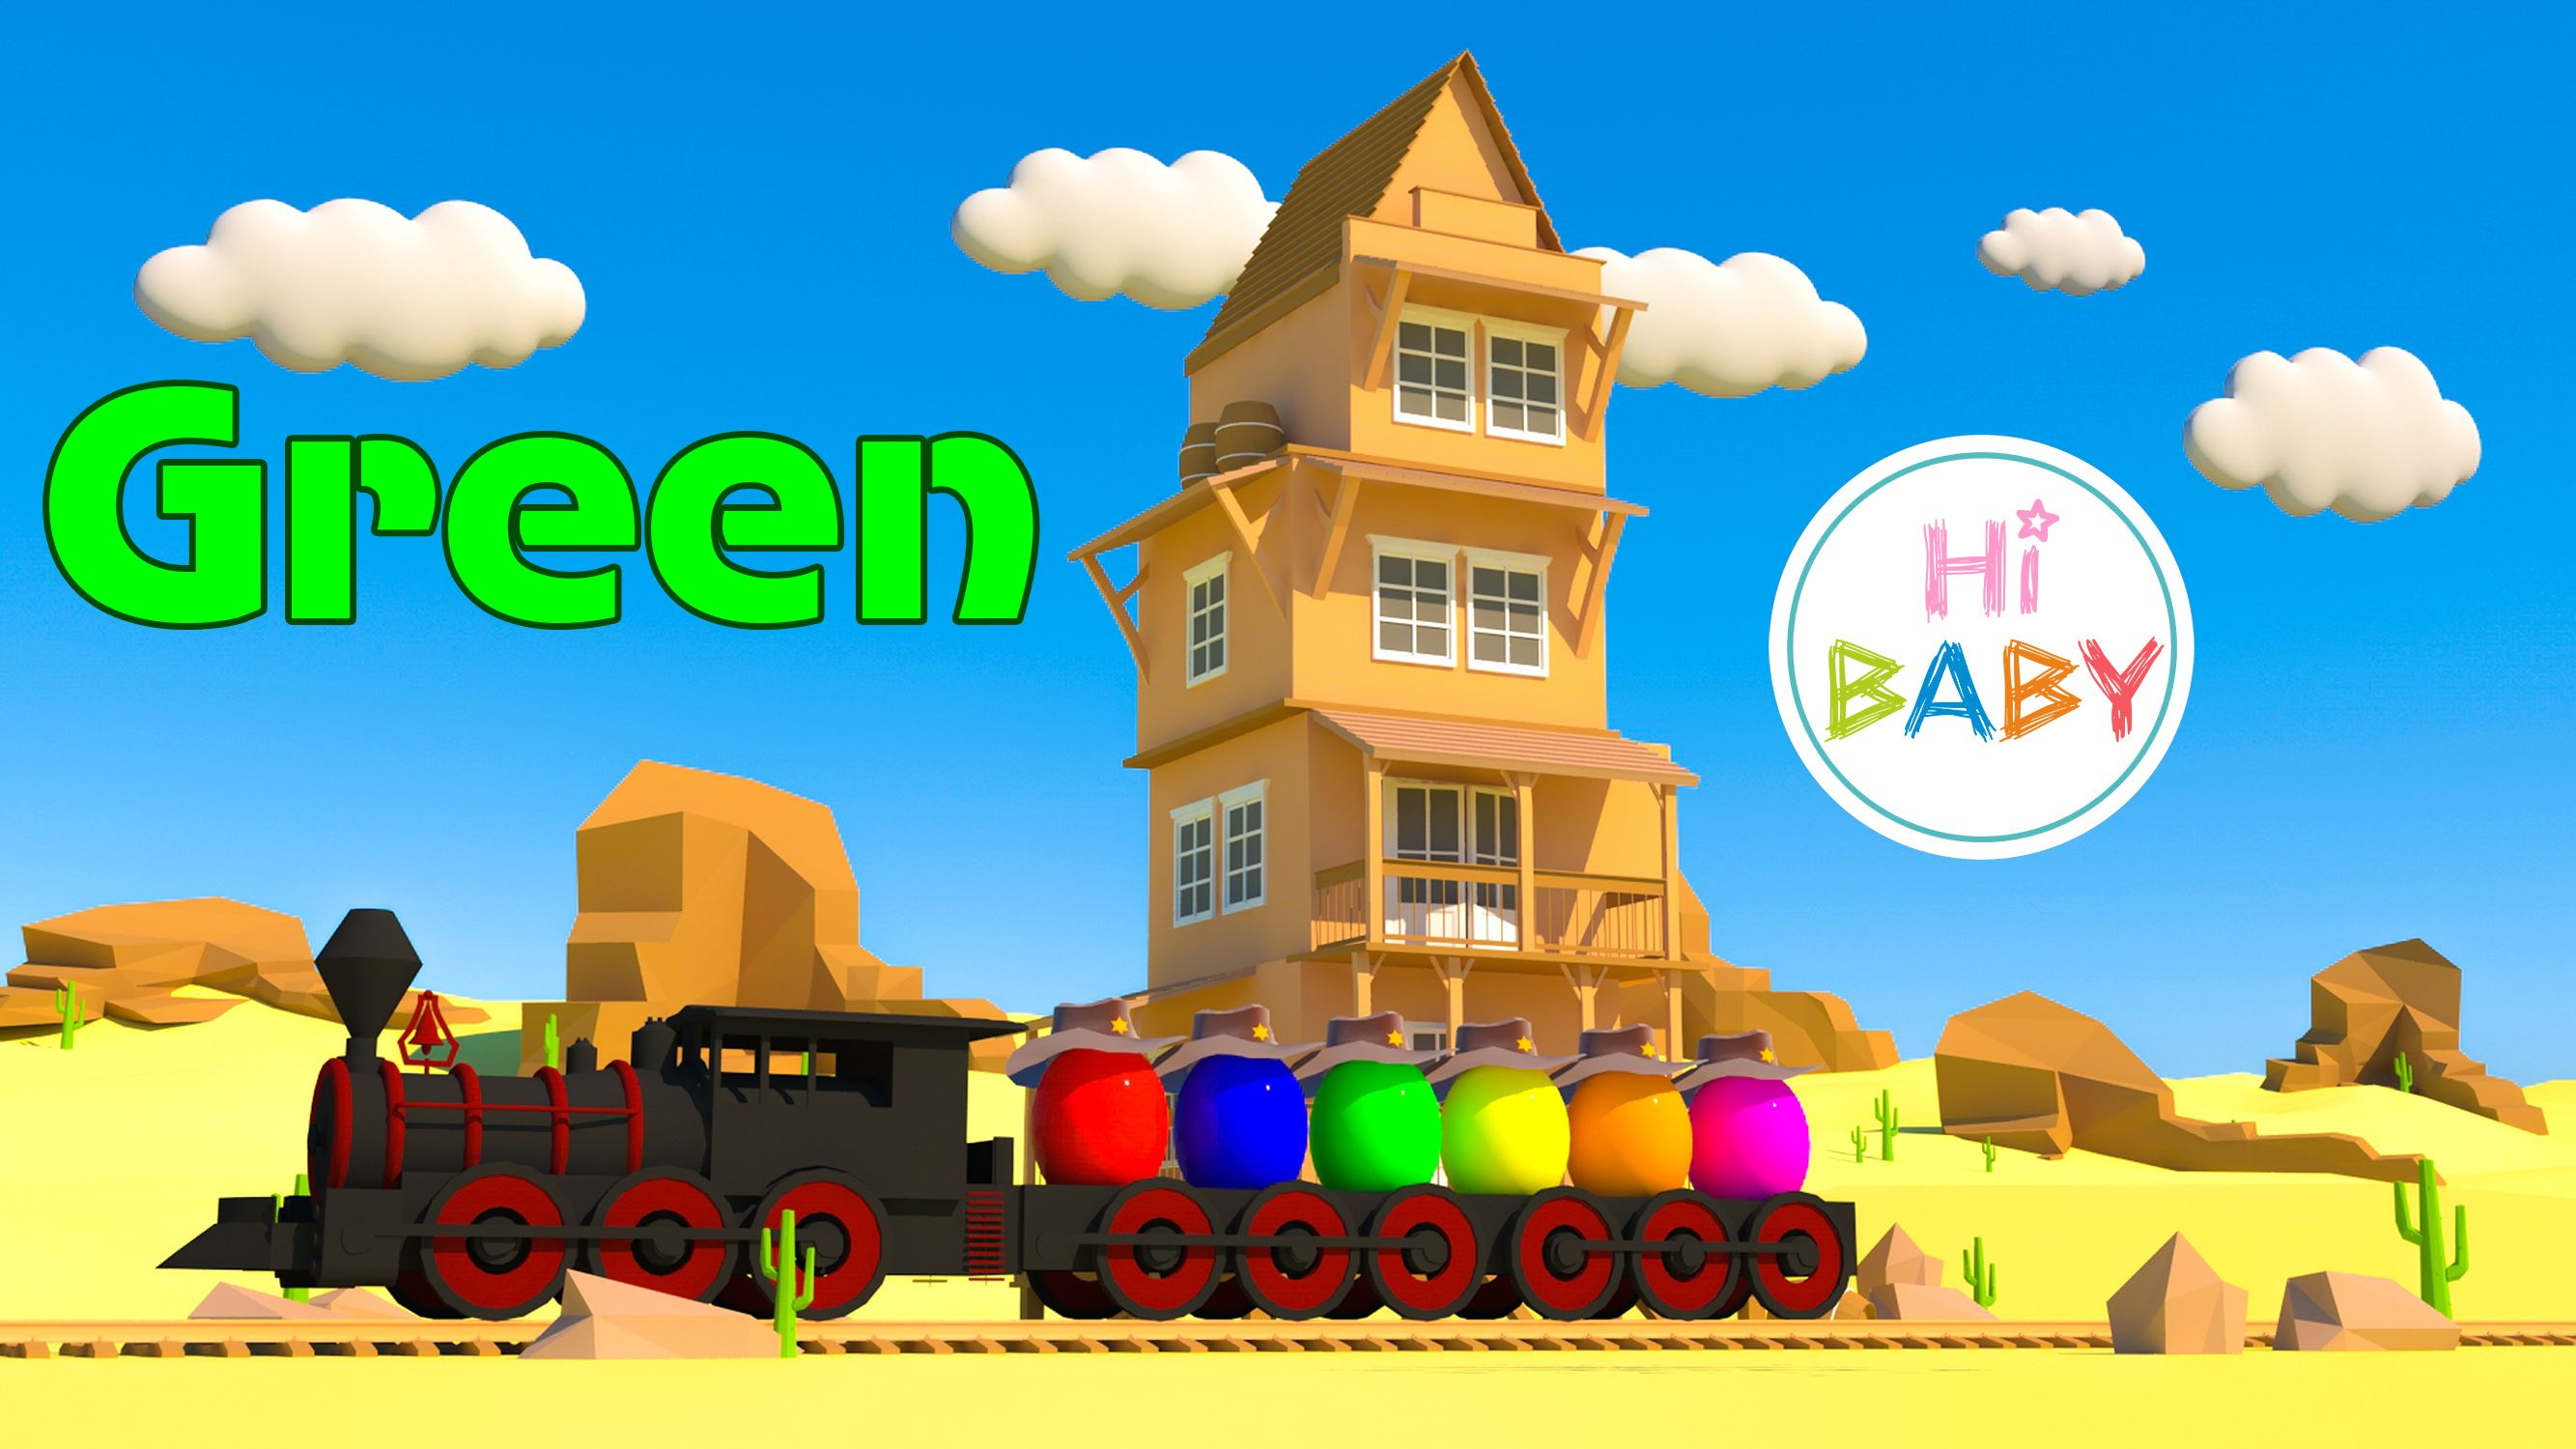 Colors For Children To Learn With Train Toys Colors Videos Collection Hi Baby 2018 Coloring For Kids Toy Train Learning Colors